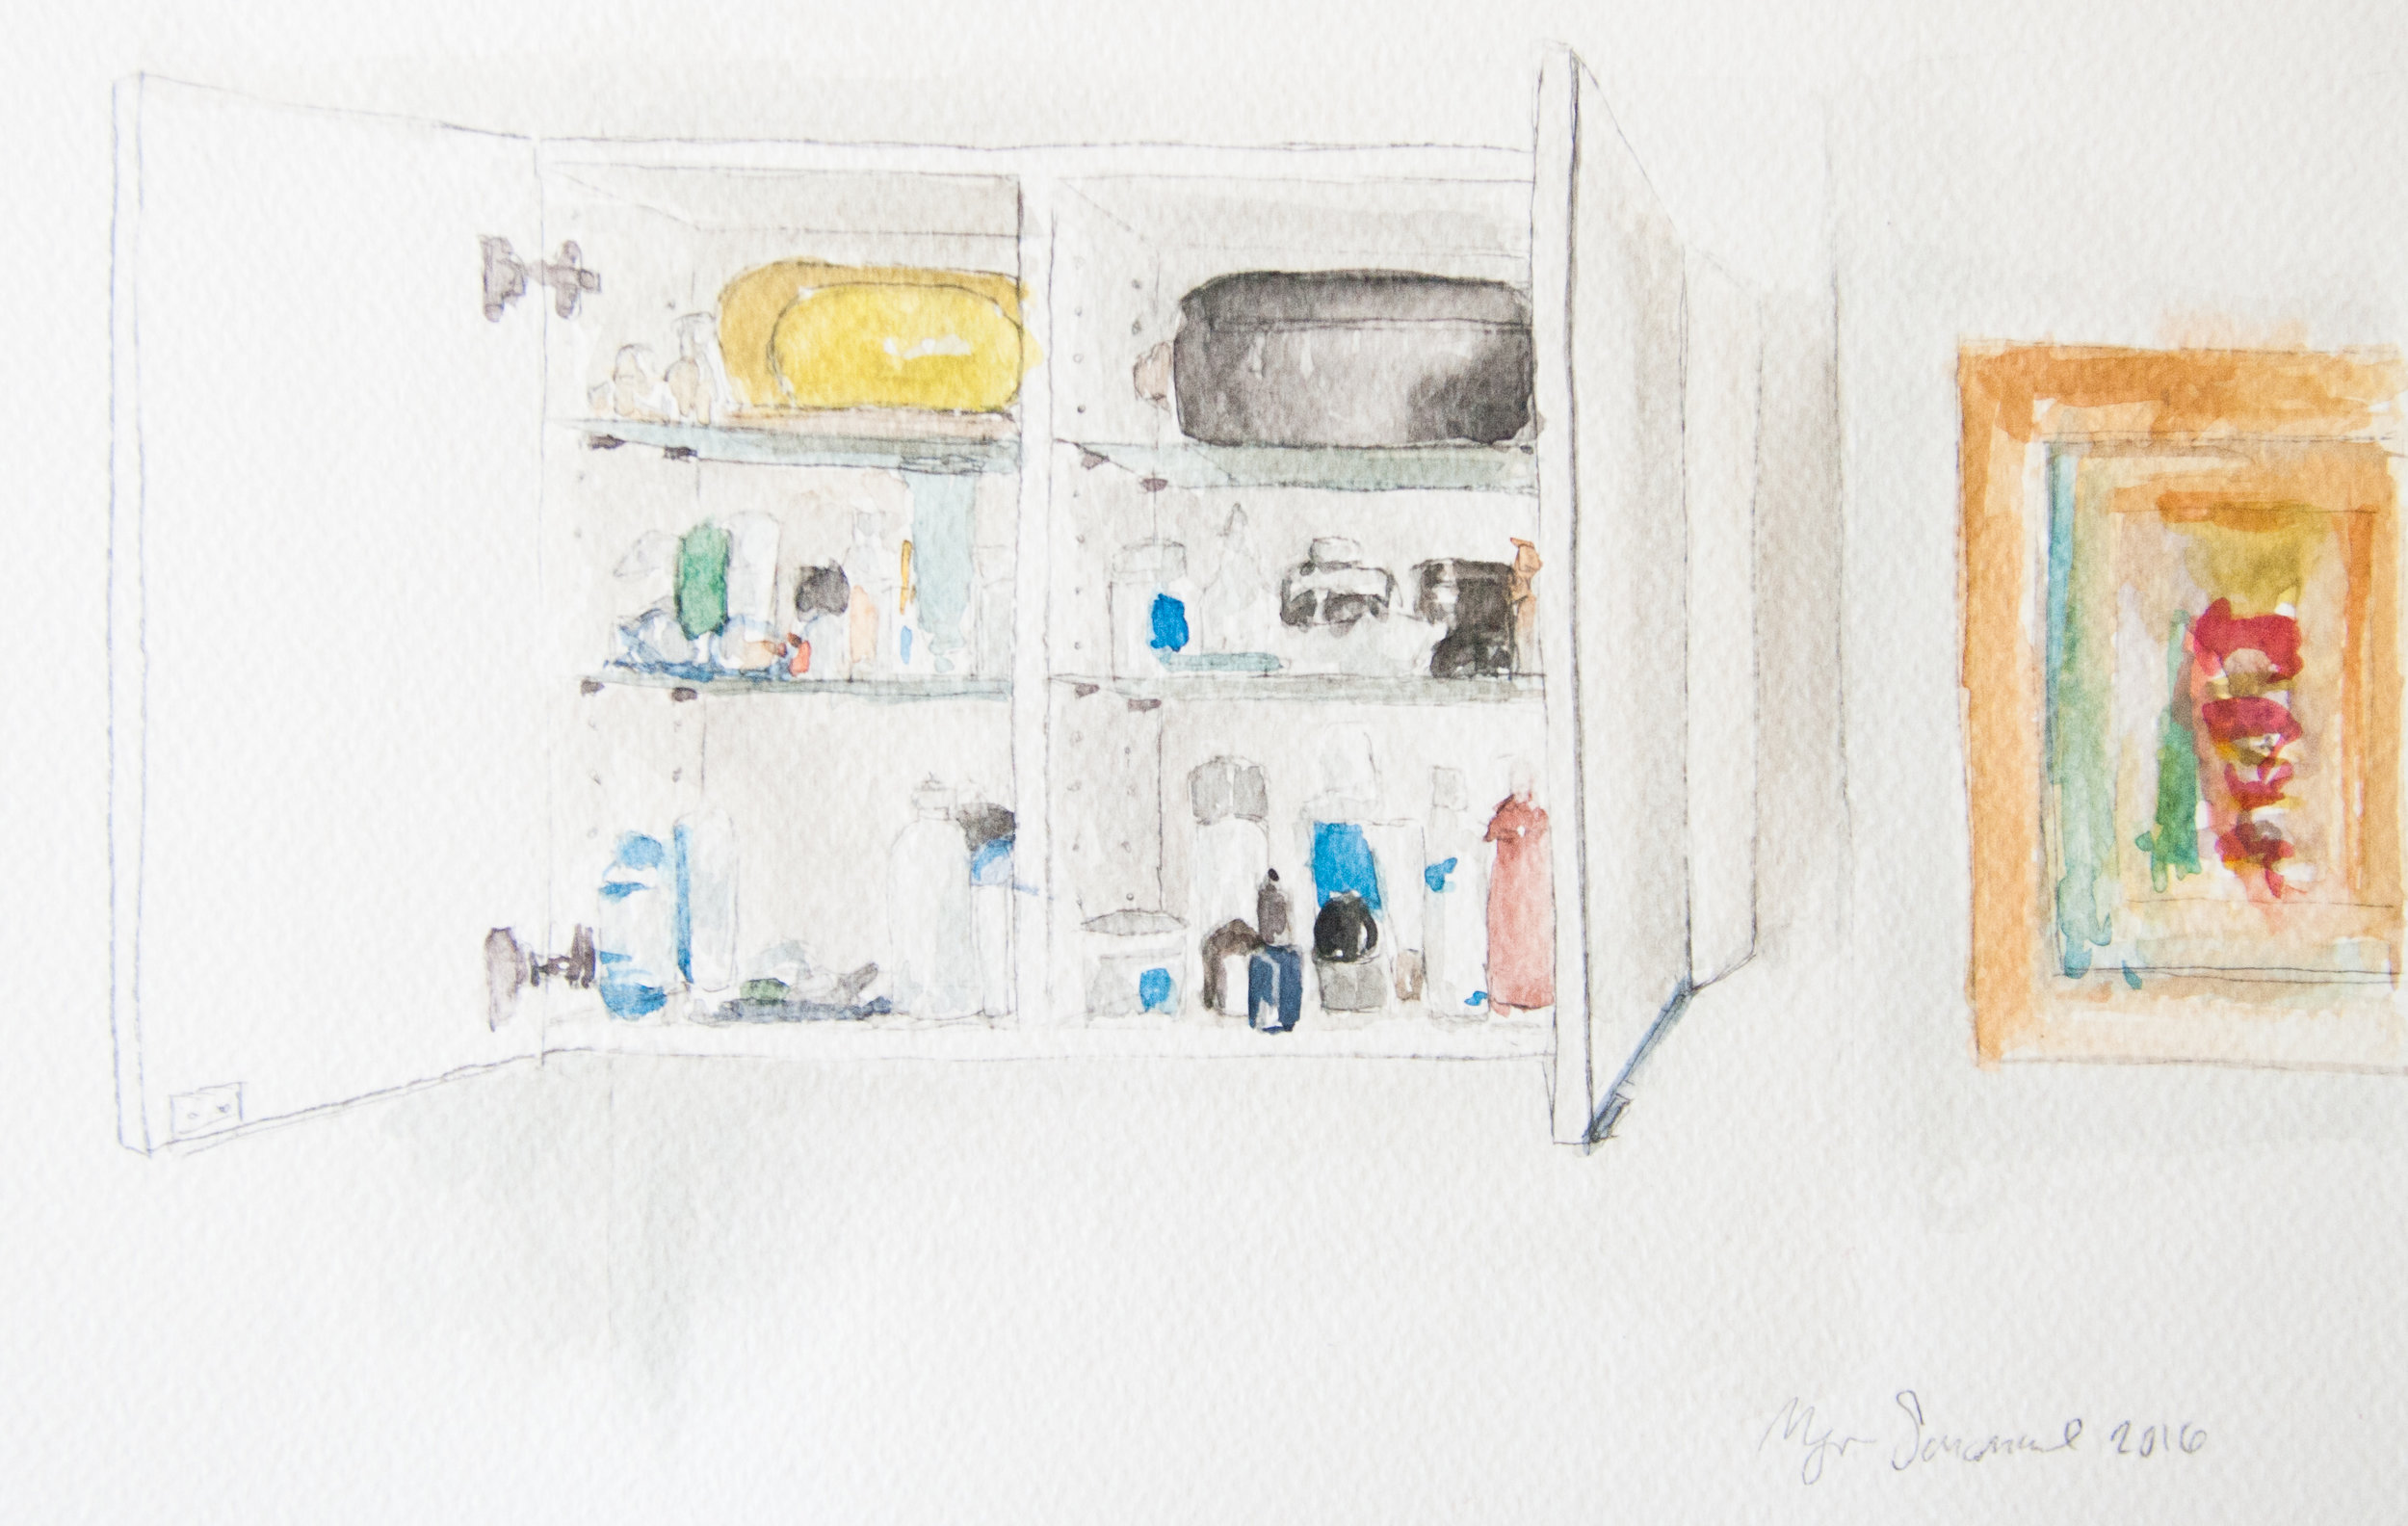 Bathroom Cabinet. 29x20cm. Watercolor, gouache, and graphite on paper. 2016.